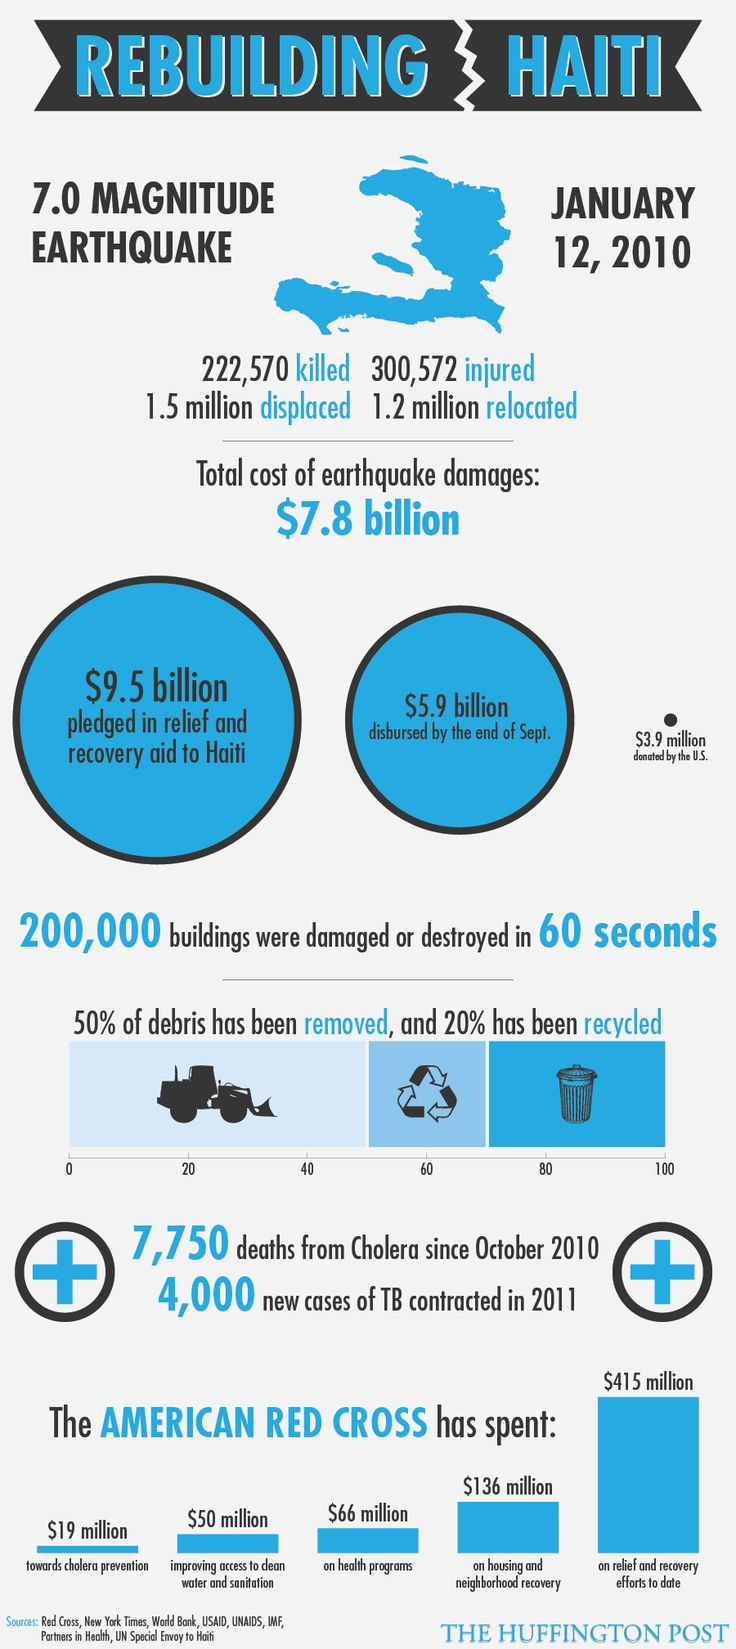 Haiti Earthquake Recovery 3 Years Later: Where Has The Money Gone? (INFOGRAPHIC)